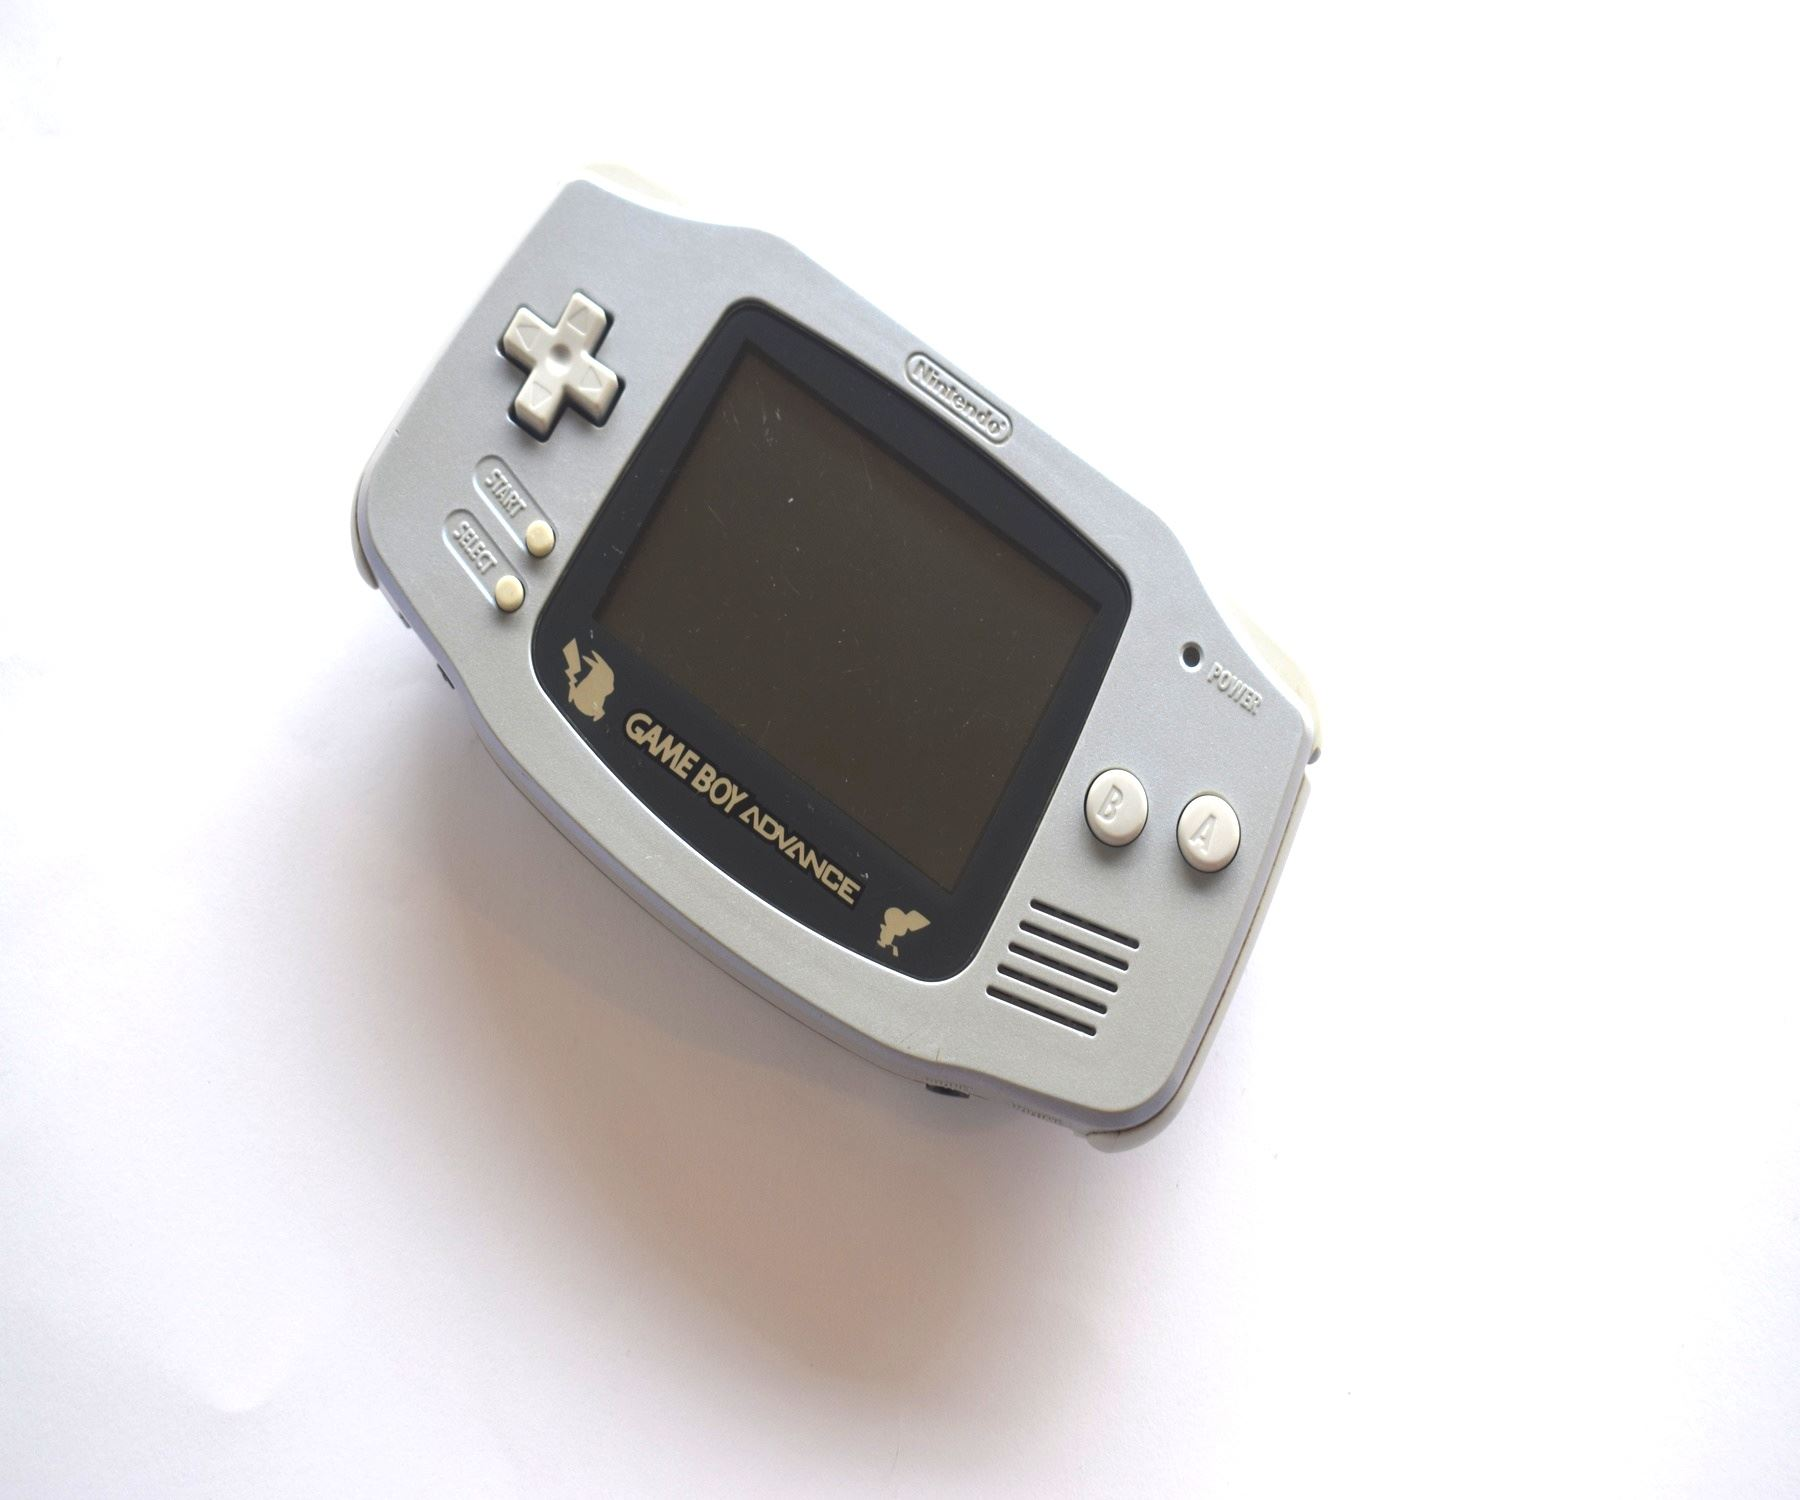 Nintendo-Gameboy-Advance-GBA-Handheld-Console-System-8-Colours-Available thumbnail 40